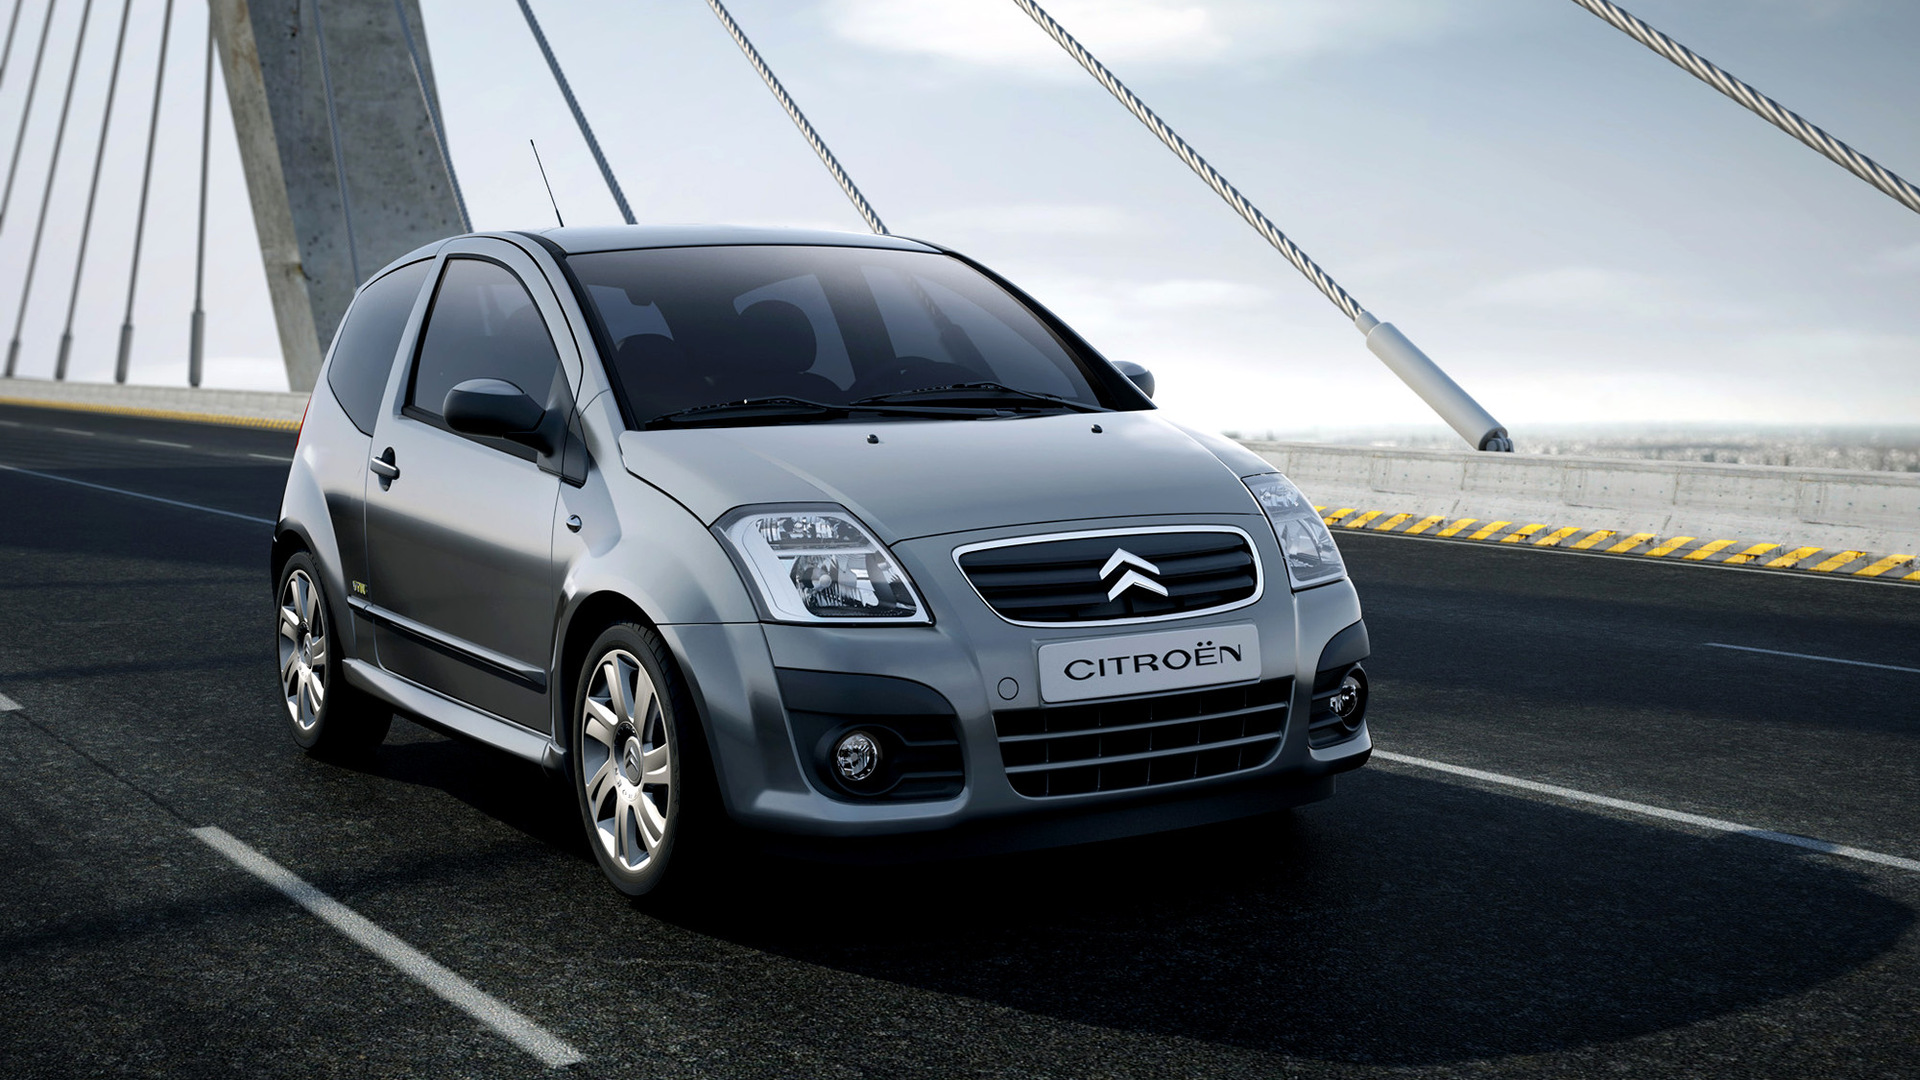 citroen c2 vtr 2008 wallpapers and hd images car pixel. Black Bedroom Furniture Sets. Home Design Ideas